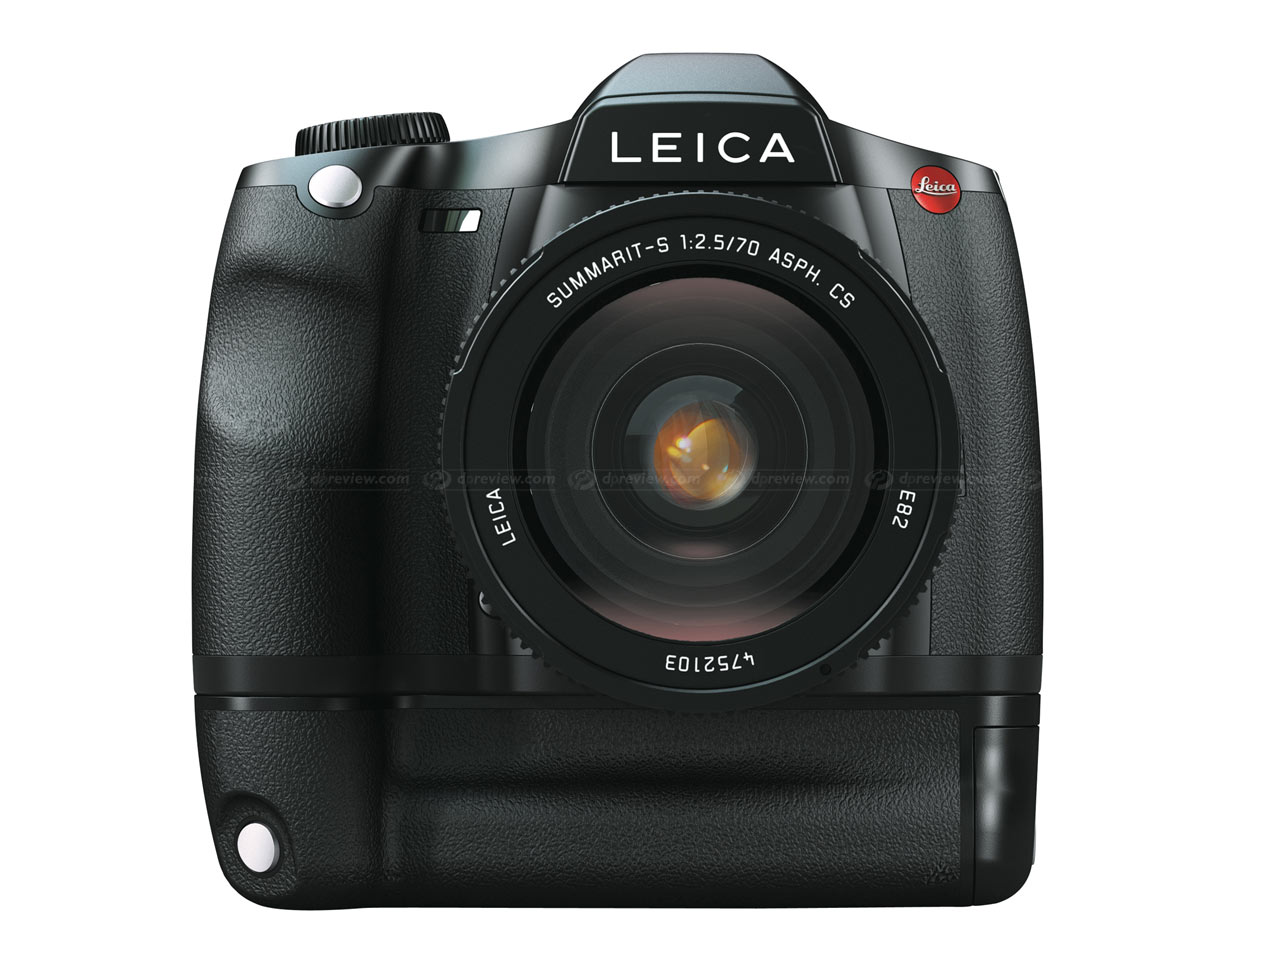 Camera Leica Dslr Camera Price leica reveal s system pricing and launch date digital photography additional images